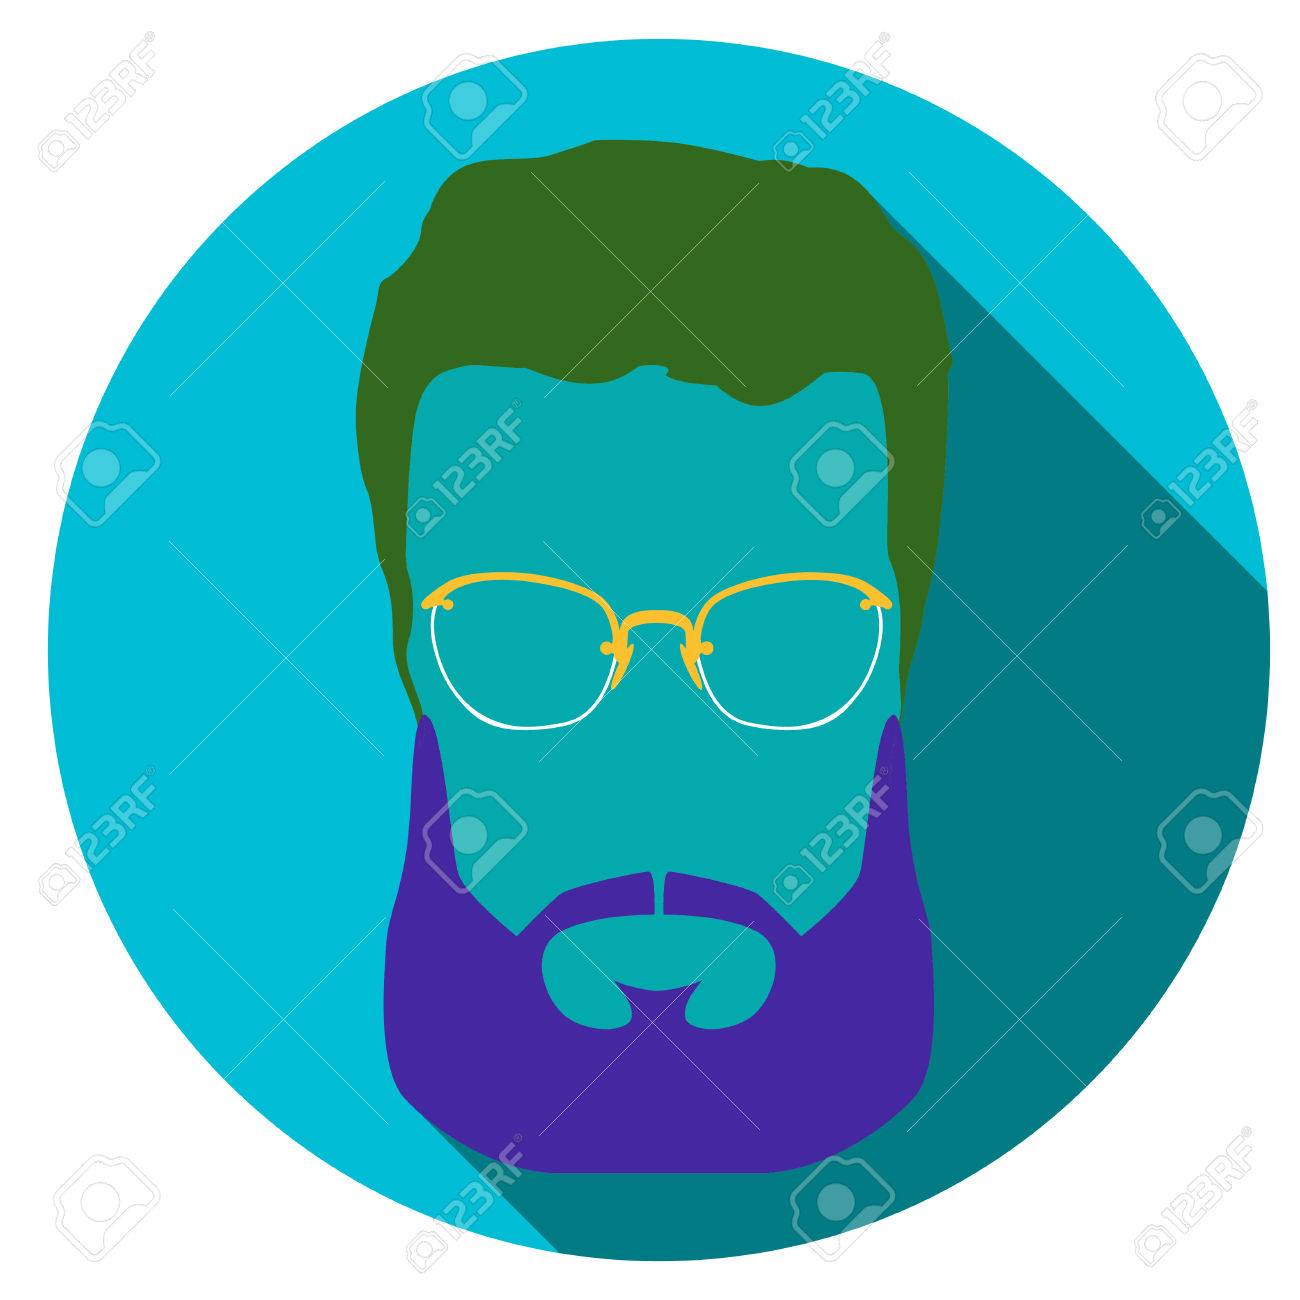 239a1f079c Super hero mask glasses collection. Flat style avatar icon. Colorful vector  illustration eps 8